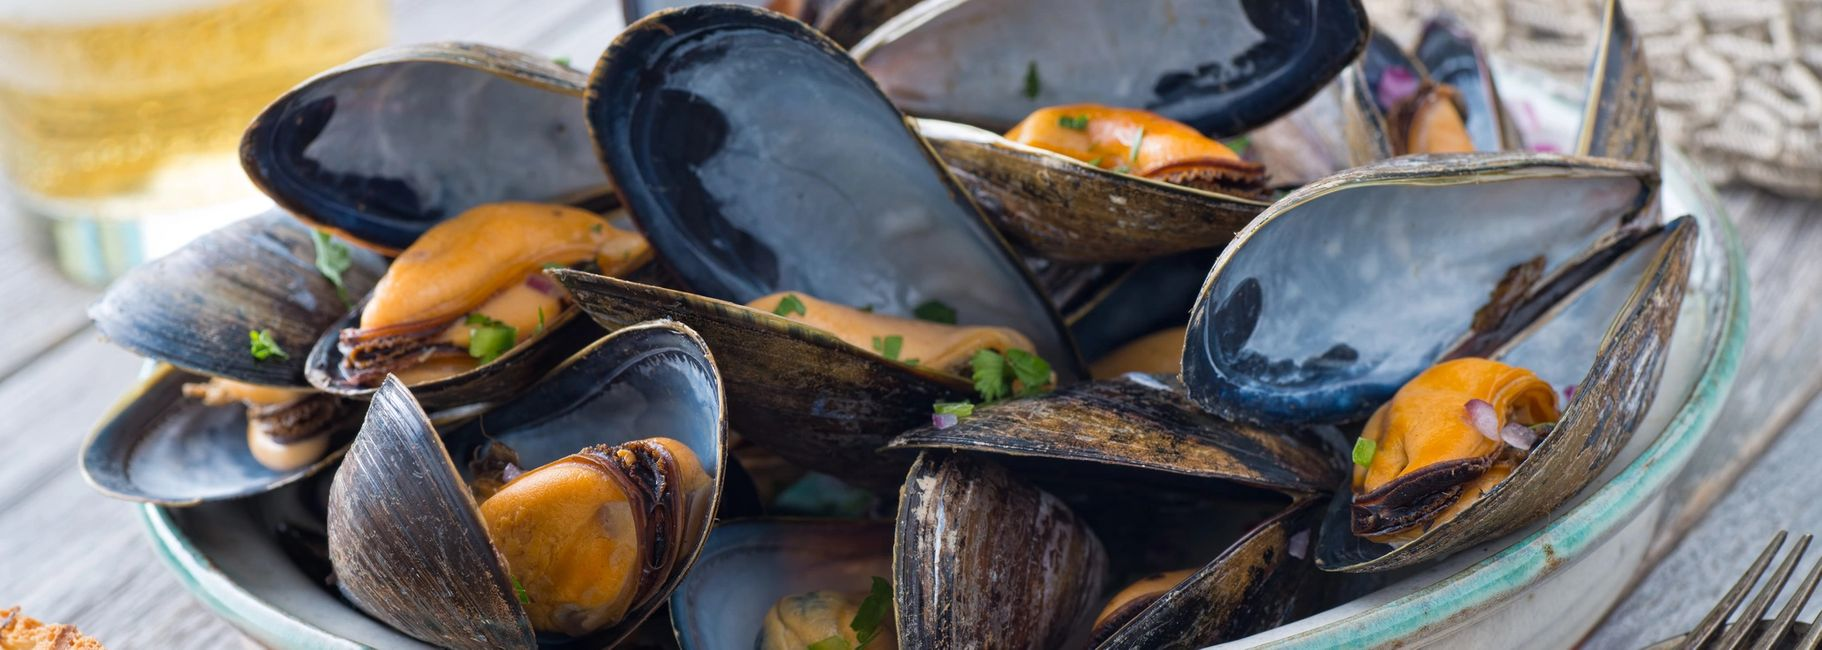 Mussels on the Half Shell with Parmesan & Garlic